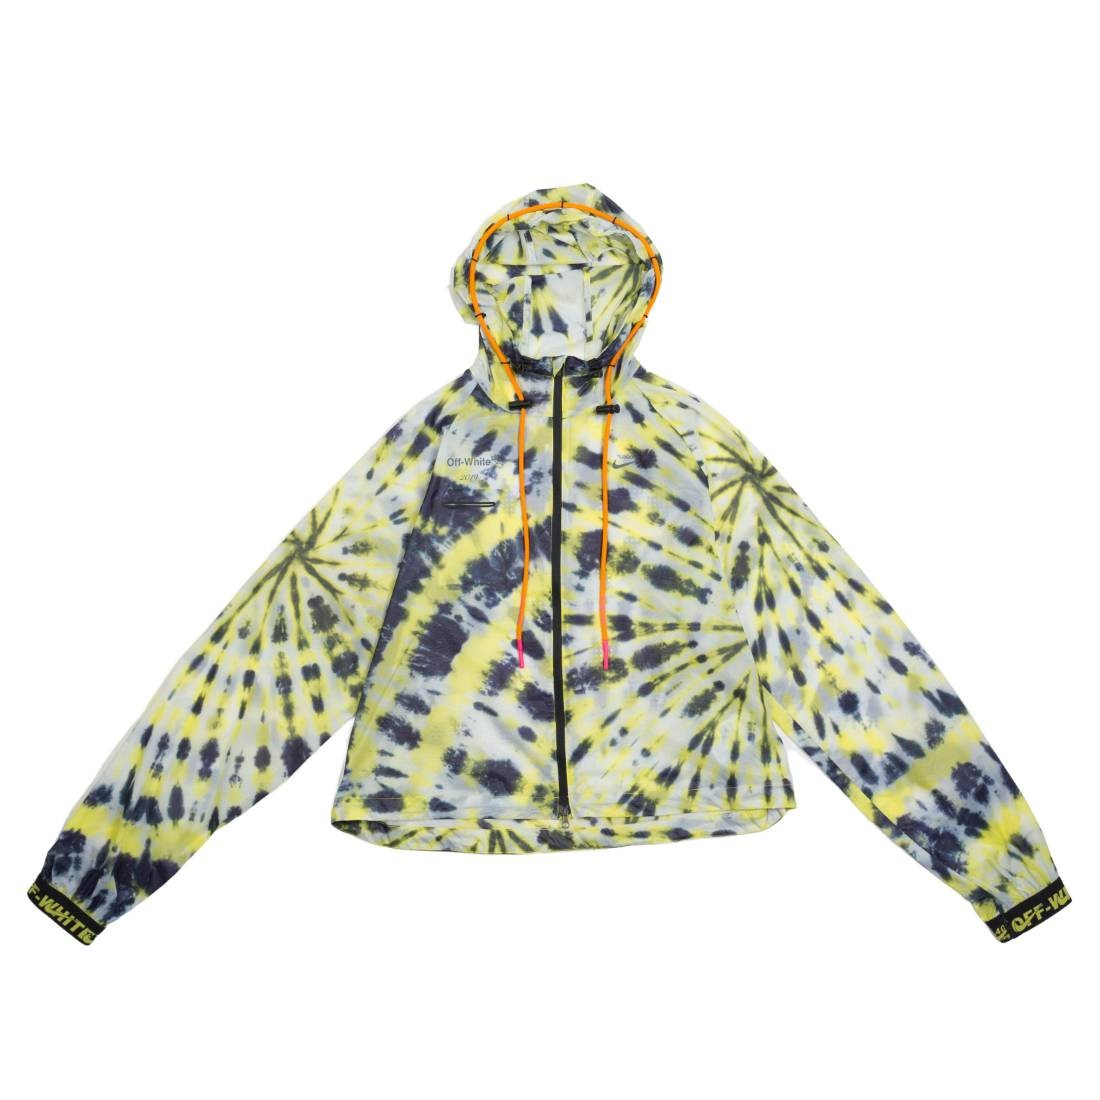 Nike X Off-White Women Nrg As #1 Aop Jacket (volt)